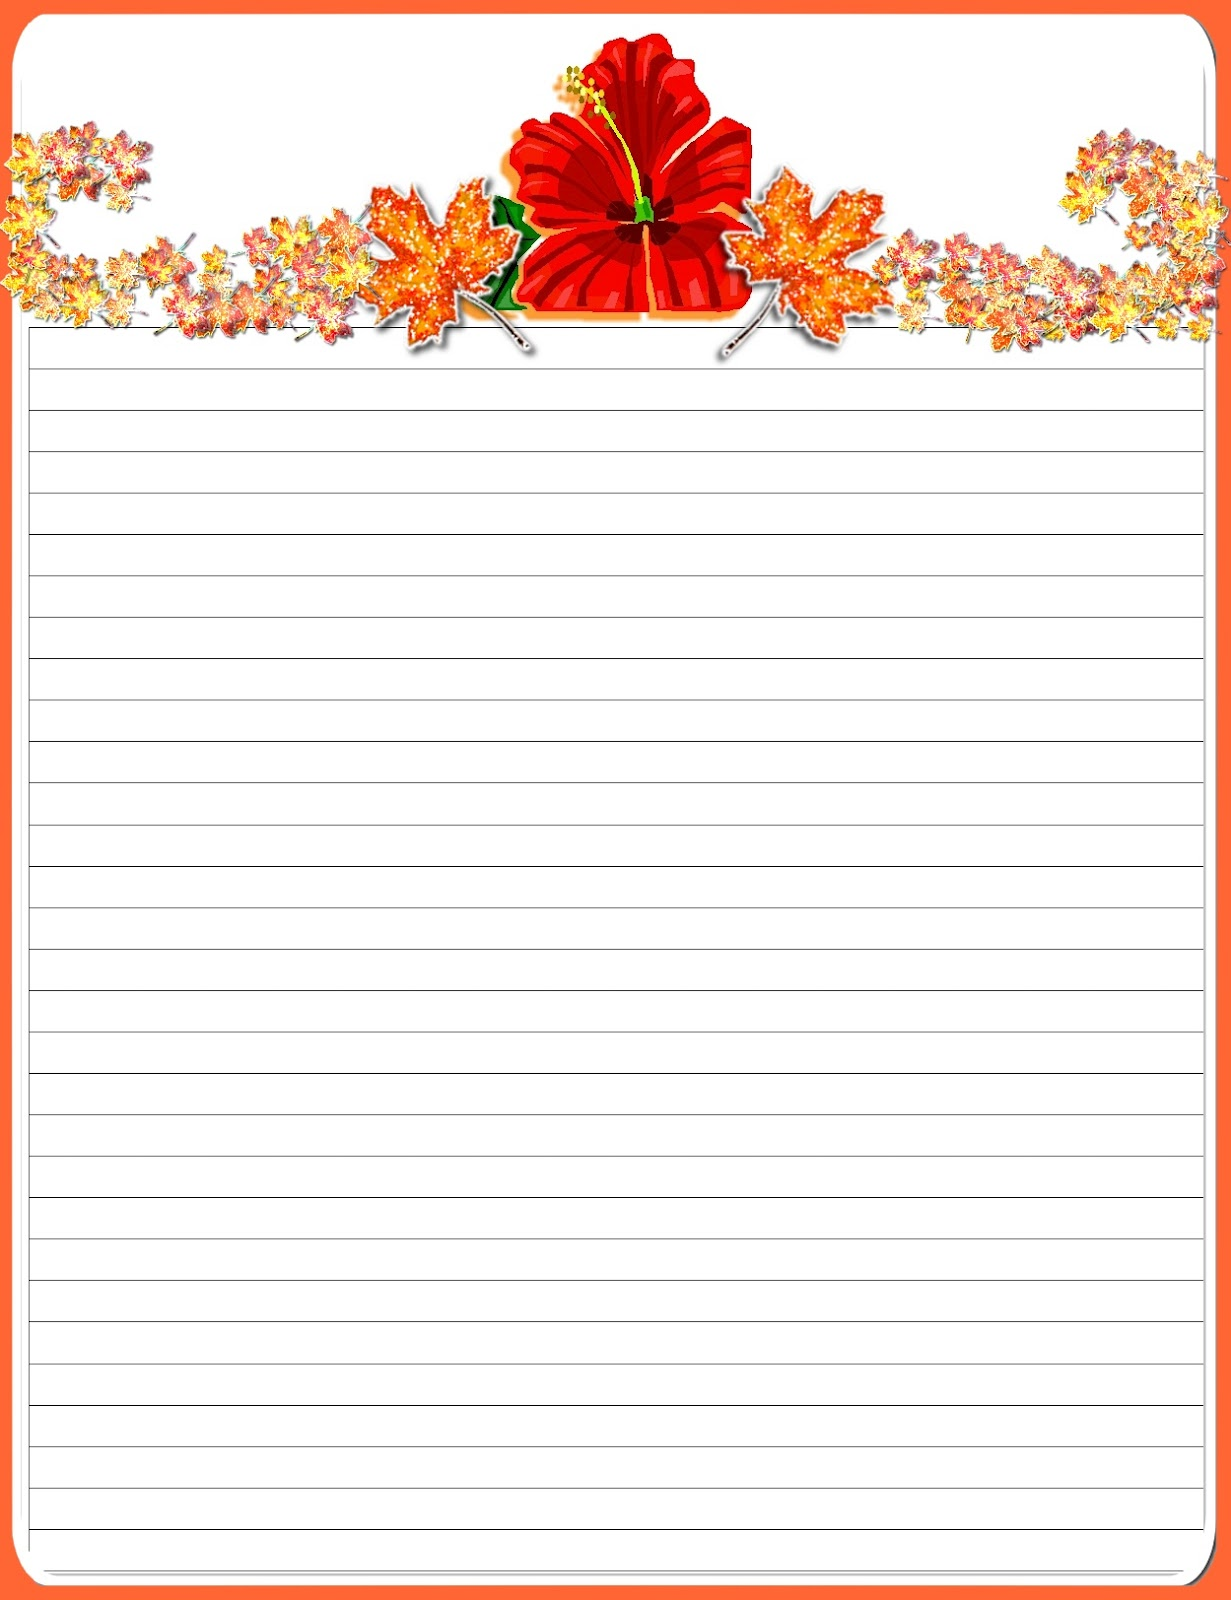 Printable Stationery Free Lined Kids Writing Paper For Boys Pictures